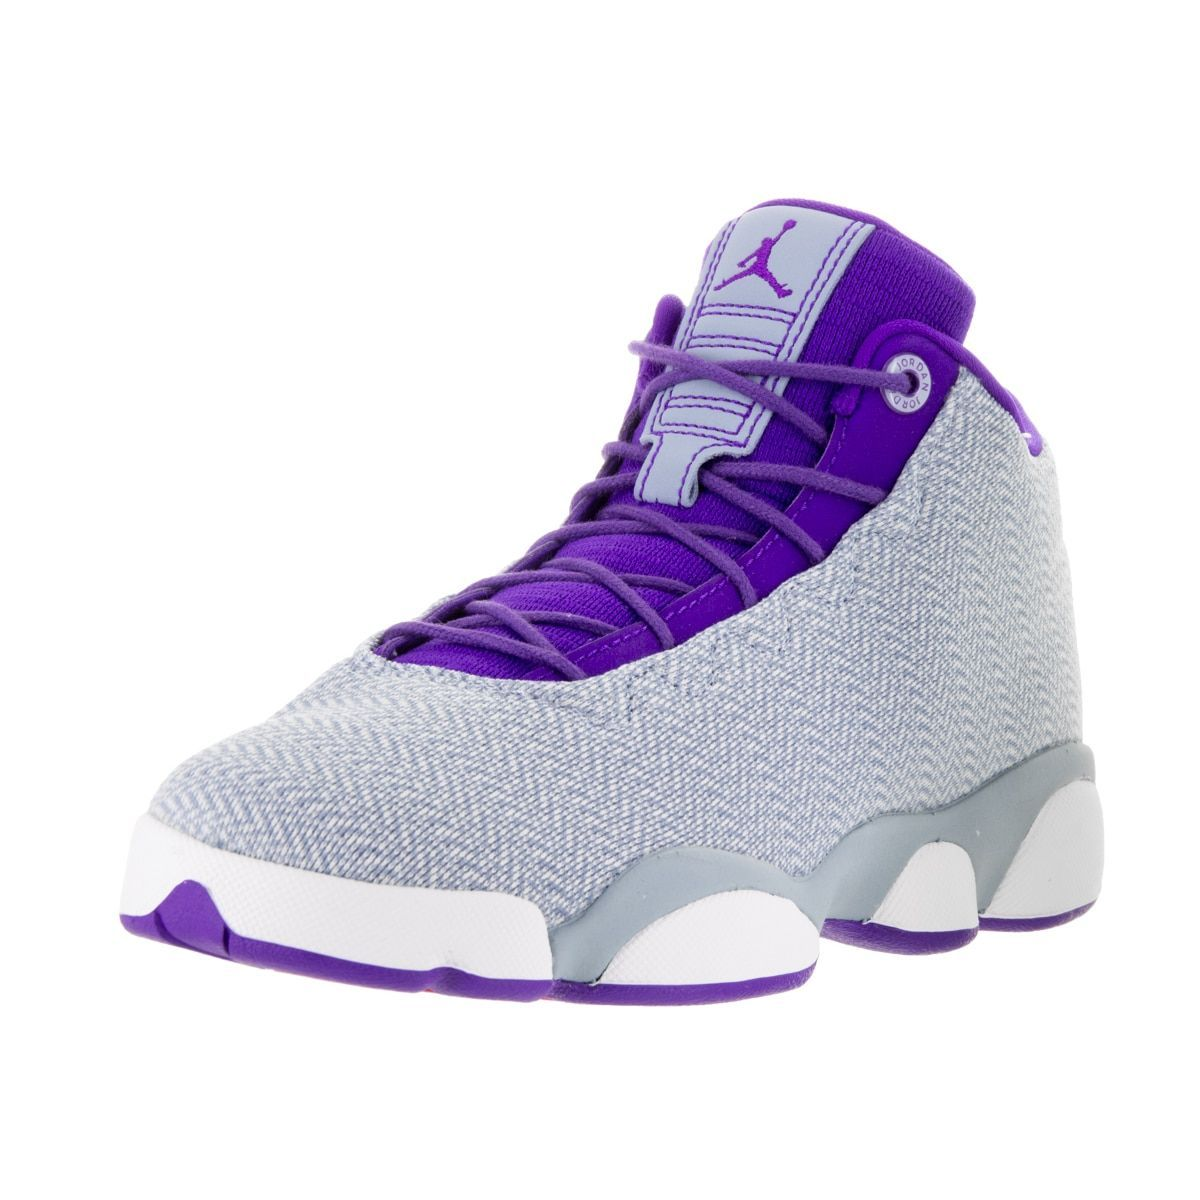 392f0e3c10eb Nike Jordan Kids Jordan Horizon Low Gg Blue  Frc Purple Embr Glw Basketball  Shoe